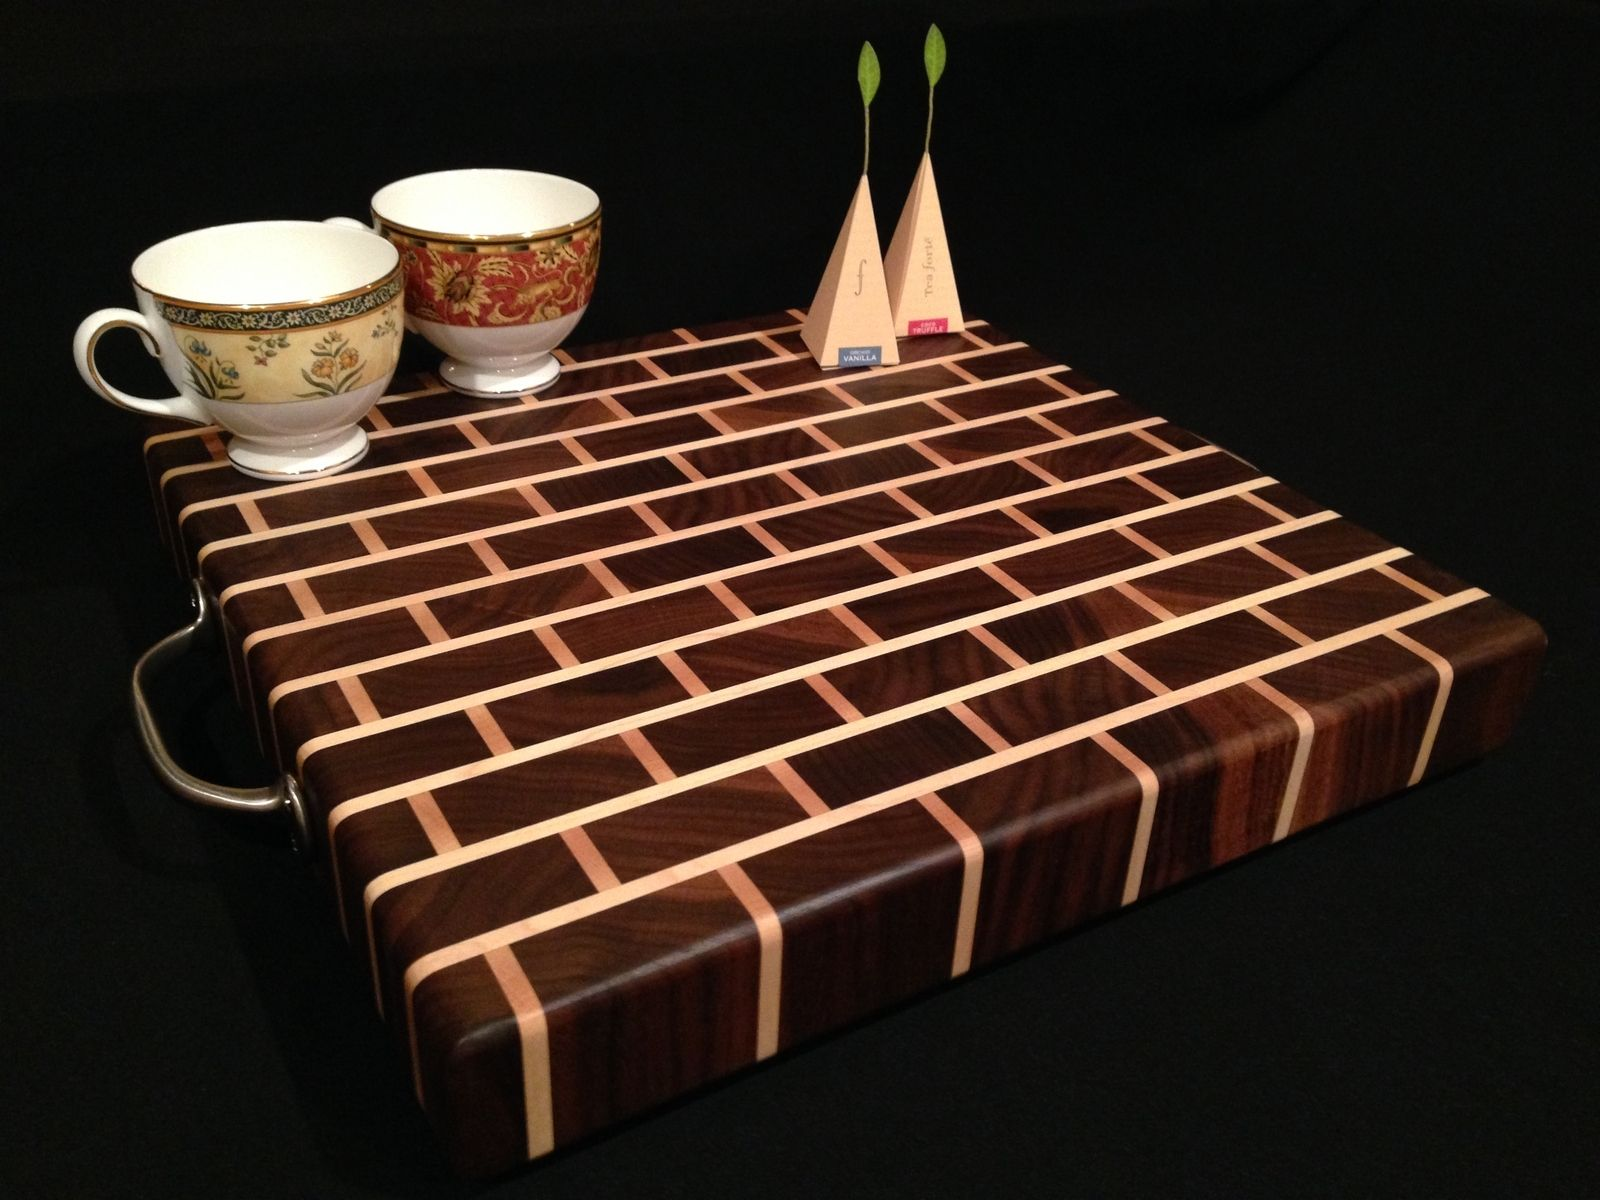 Buy Hand Crafted Signature Design Black Walnut Bar Block Chopping Block Made To Order From Magnolia Place Woodworks Custommade Com